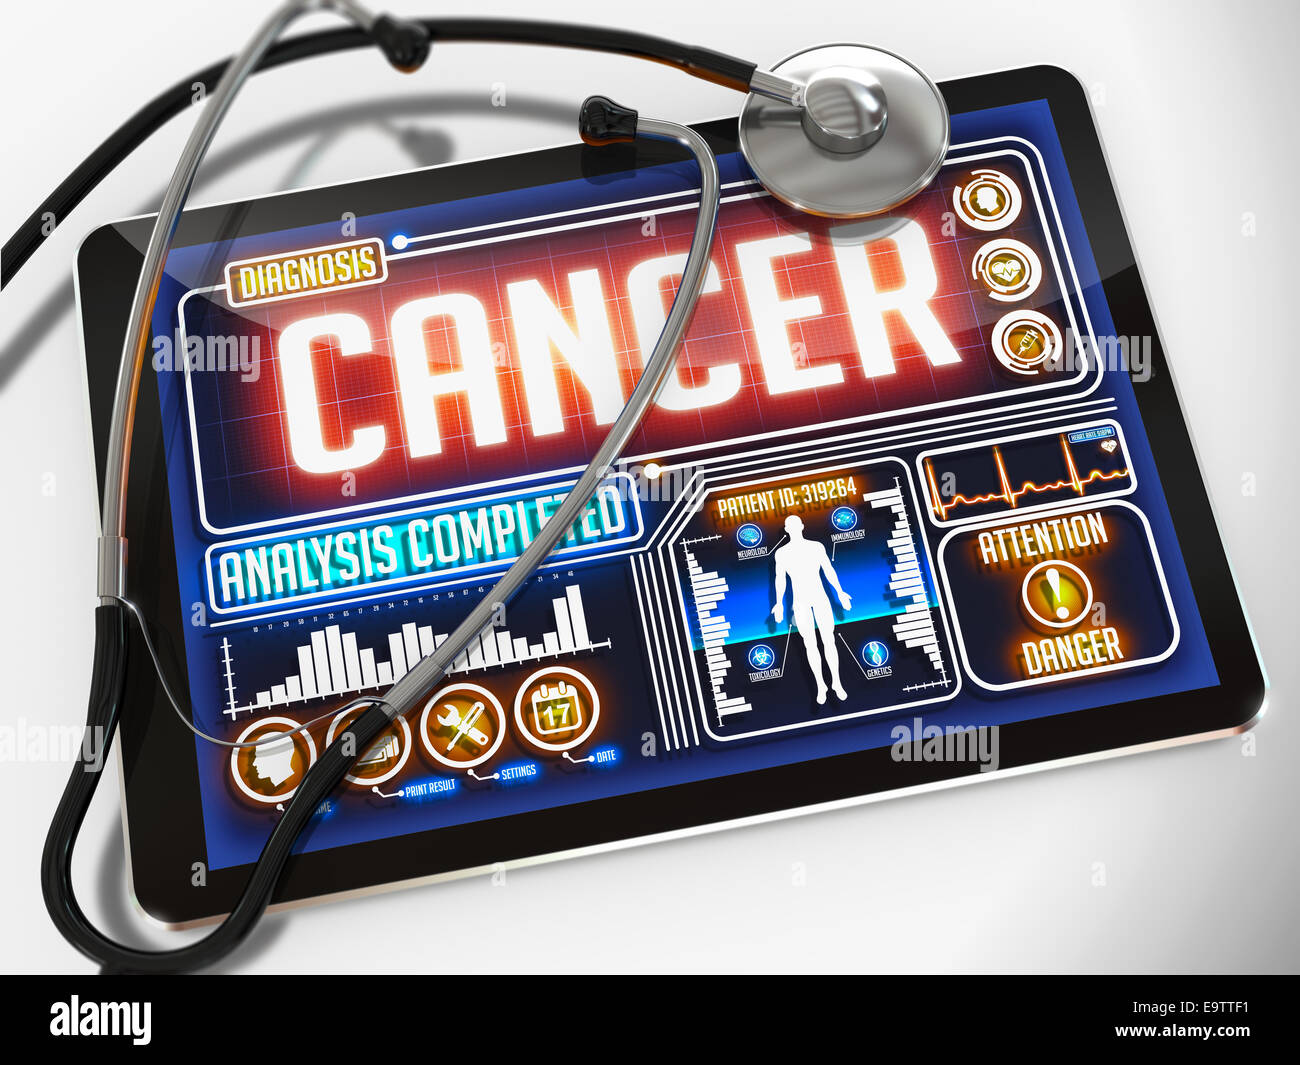 Medical Tablet with the Diagnosis of Cancer on the Display and a Black Stethoscope on White Background. - Stock Image